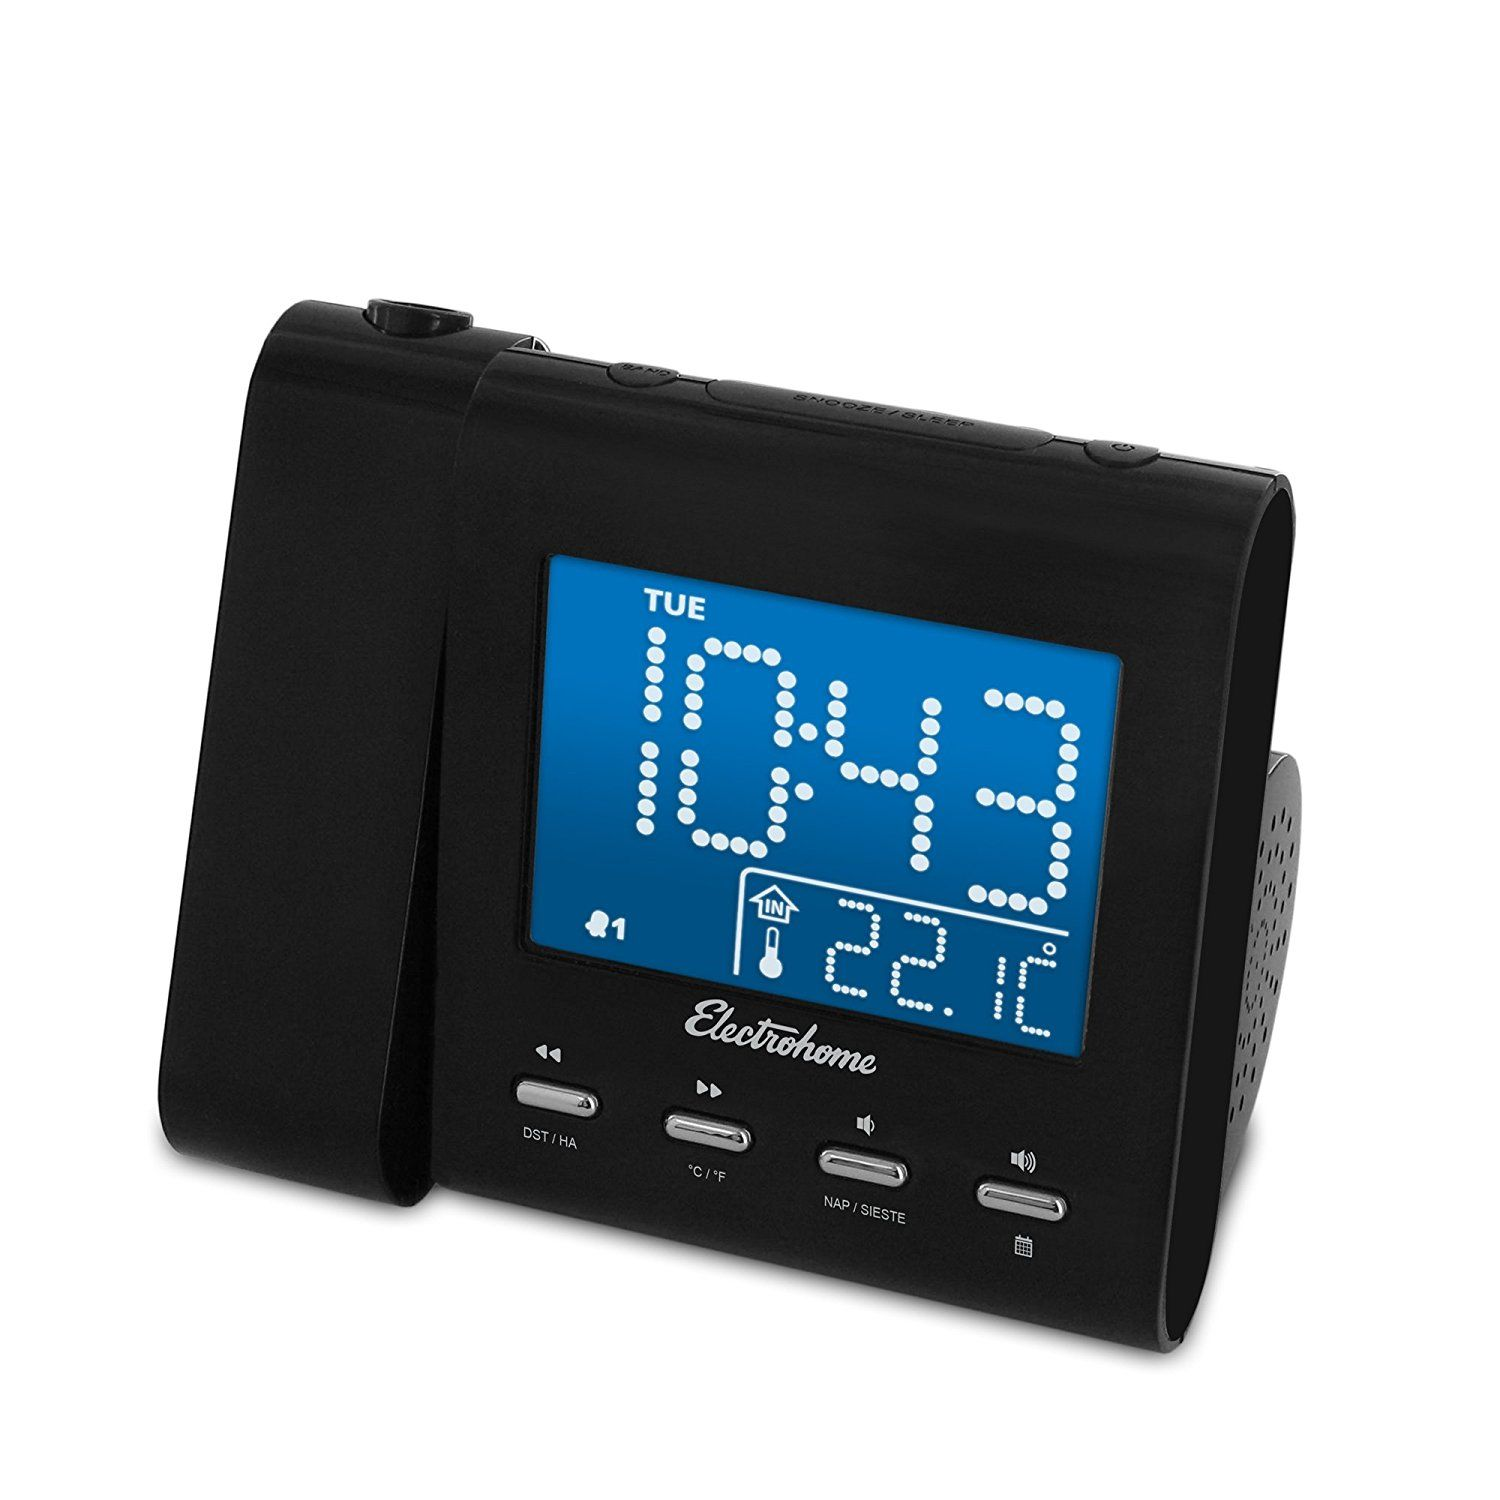 Electrohome EAAC601 Projection Alarm Clock with AMFM